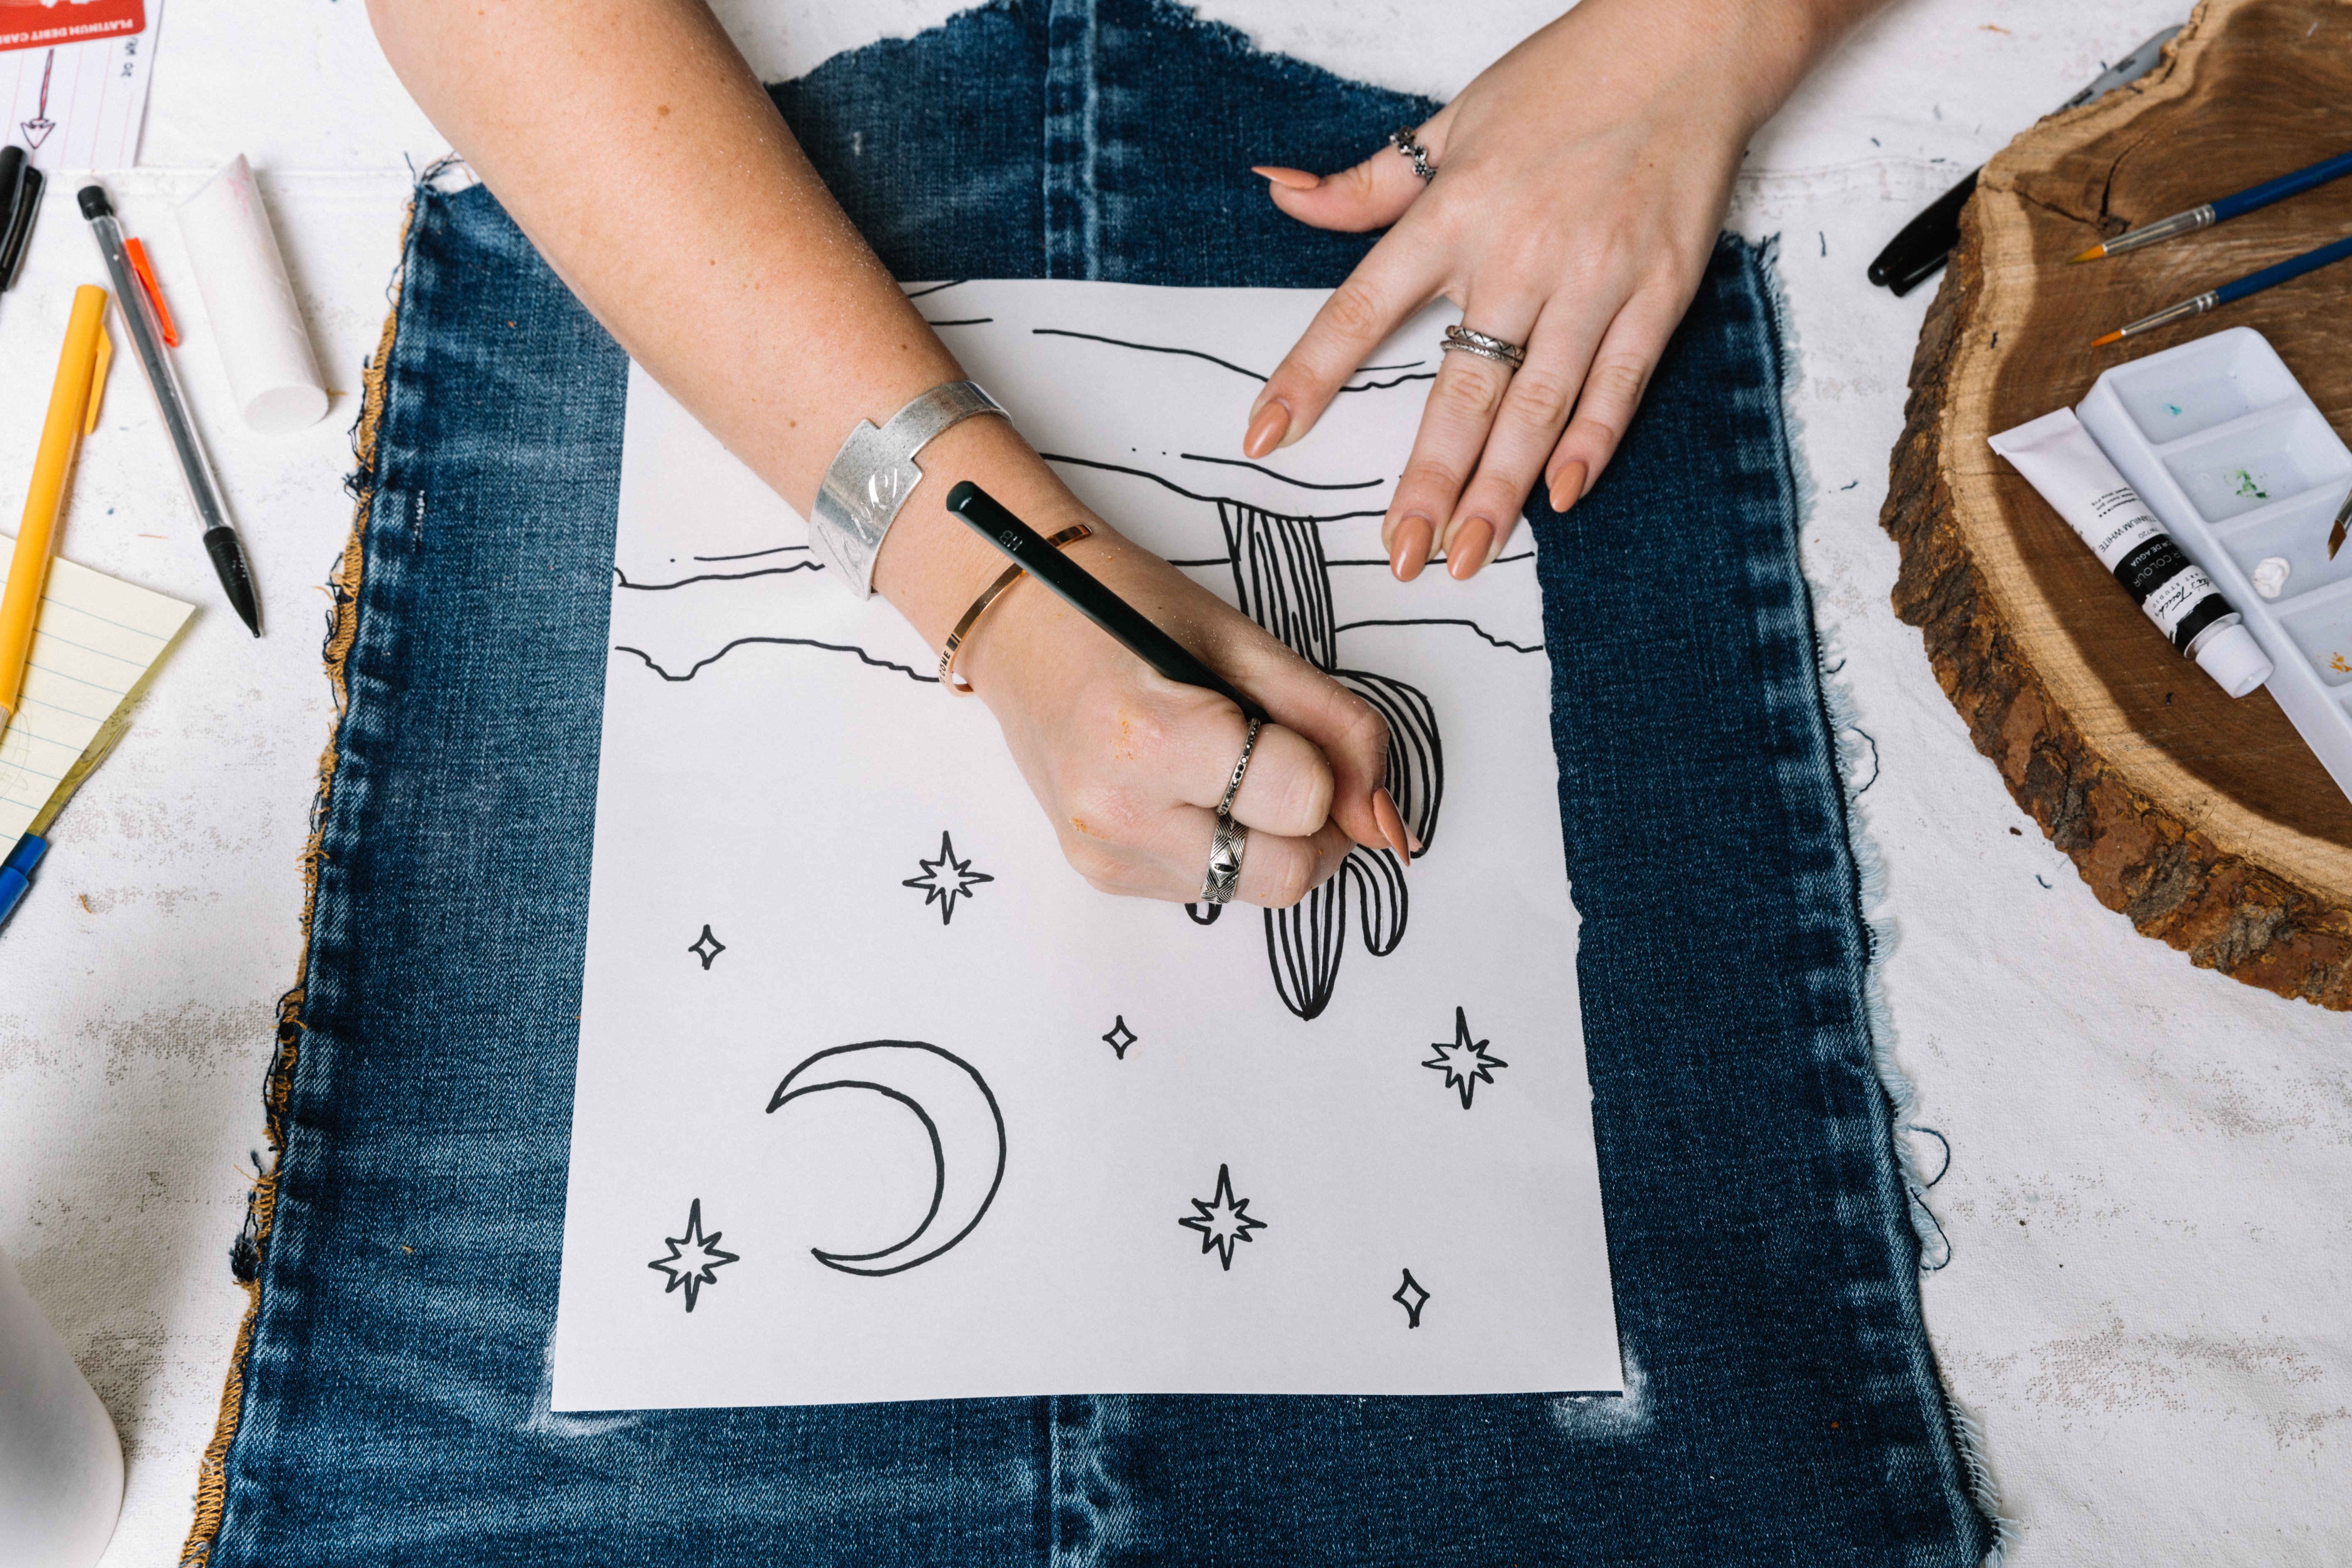 Painting the denim tapestry.